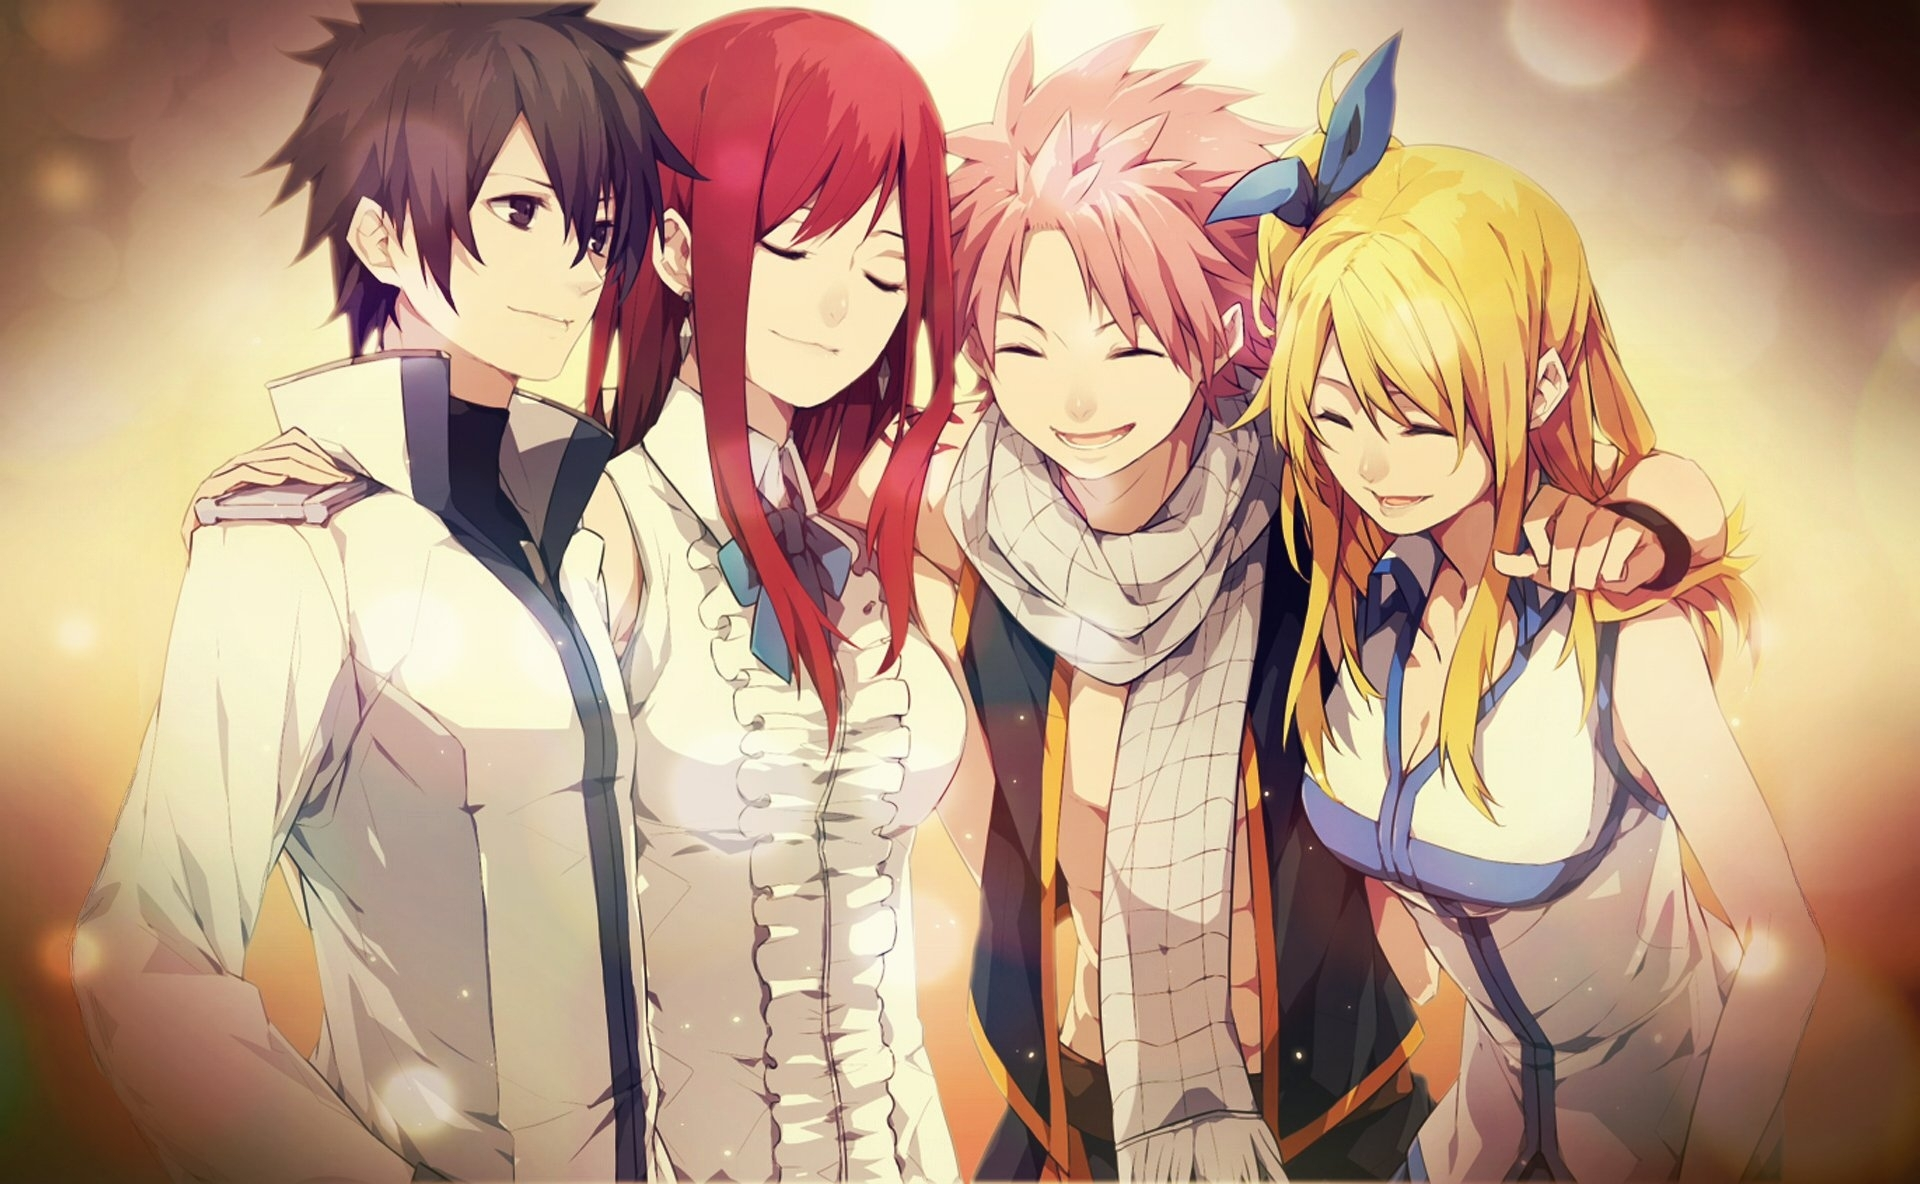 the strongest team in fairy tail full hd fond d'écran and arrière